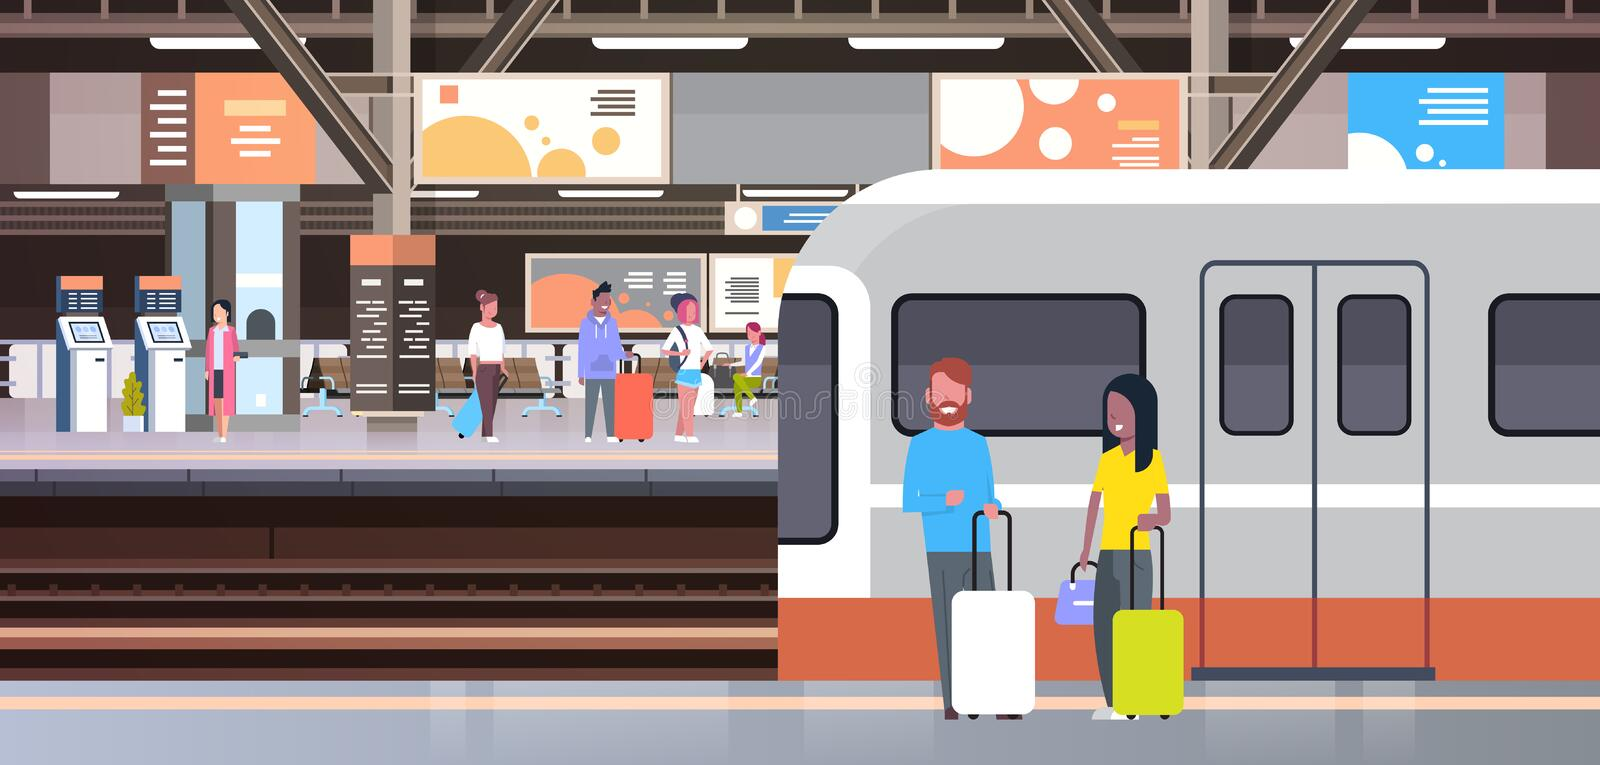 Railway Station With People Passengers Going Off Train Holding Bags Transport And Transportation Concept. Vector Illustration vector illustration